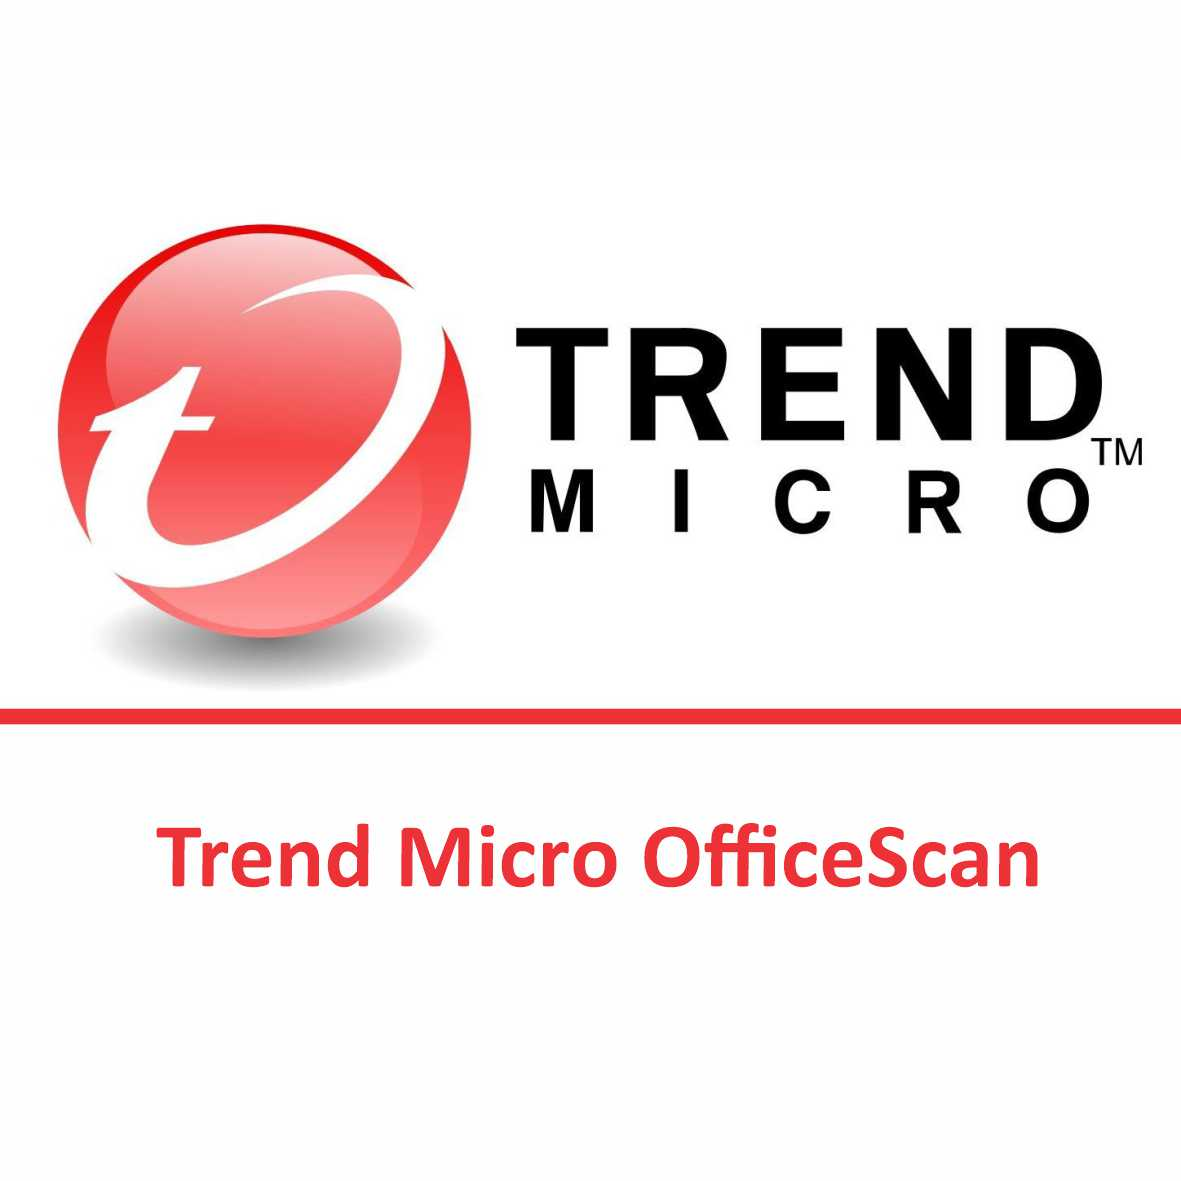 Trend Micrо OfficeScan